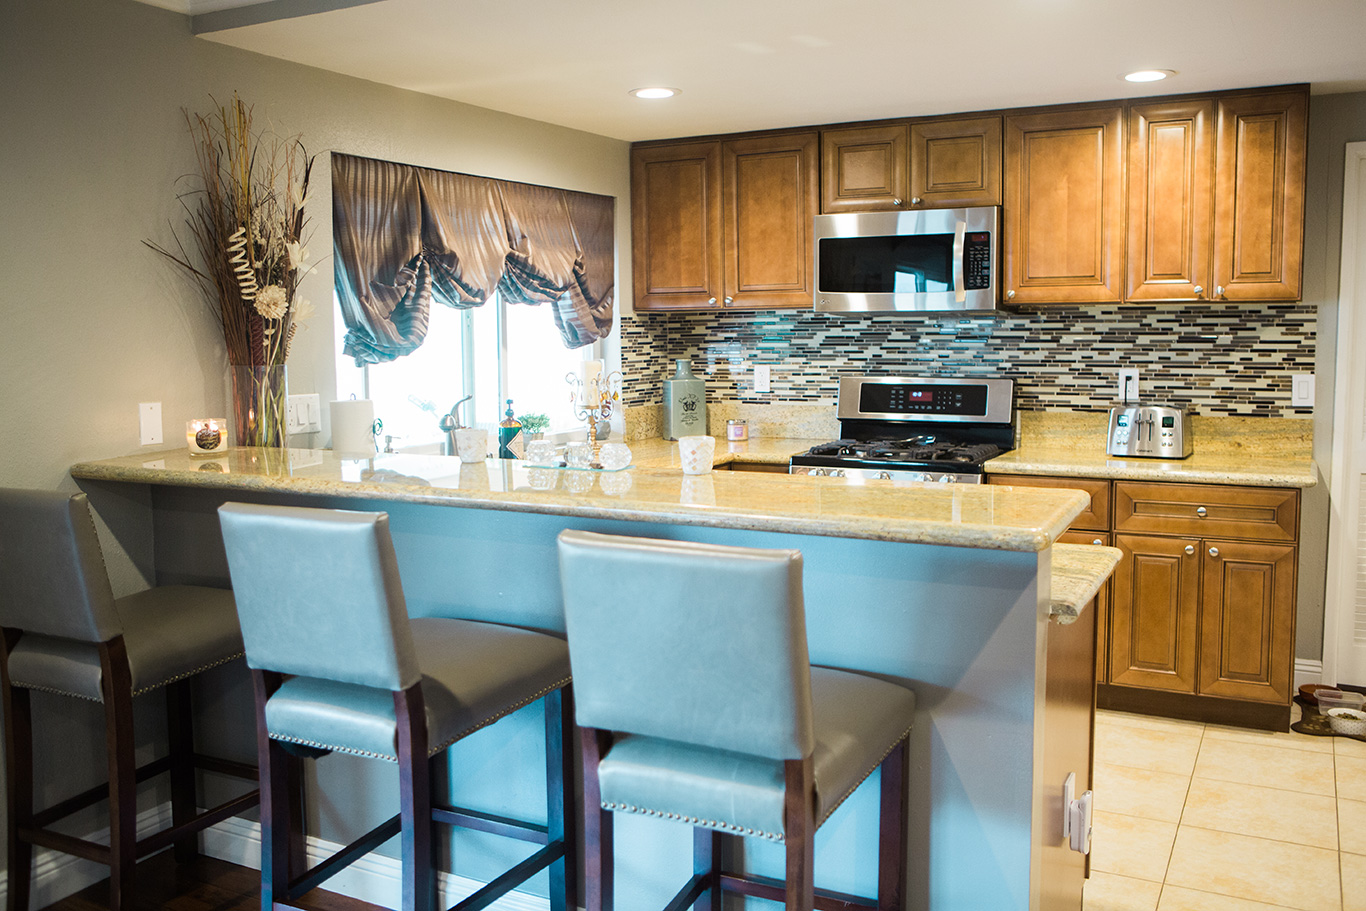 Belle Angelou Interiors – Creating, Design, and Transforming your space.